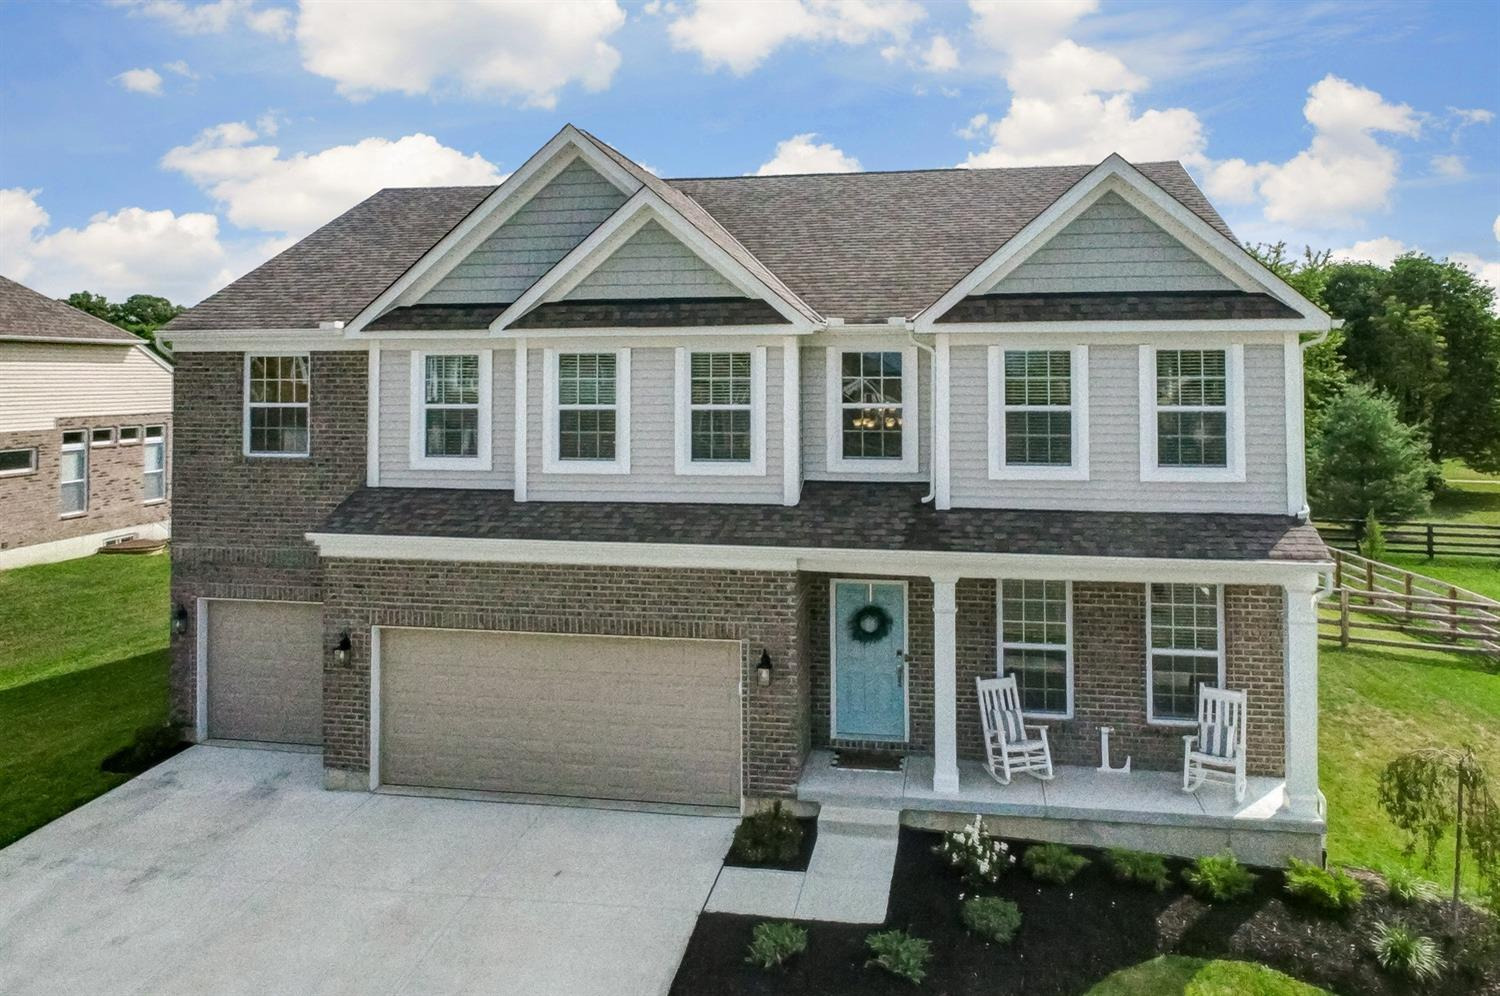 Property for sale at 1720 Red Clover Drive, Turtle Creek Twp,  Ohio 45036